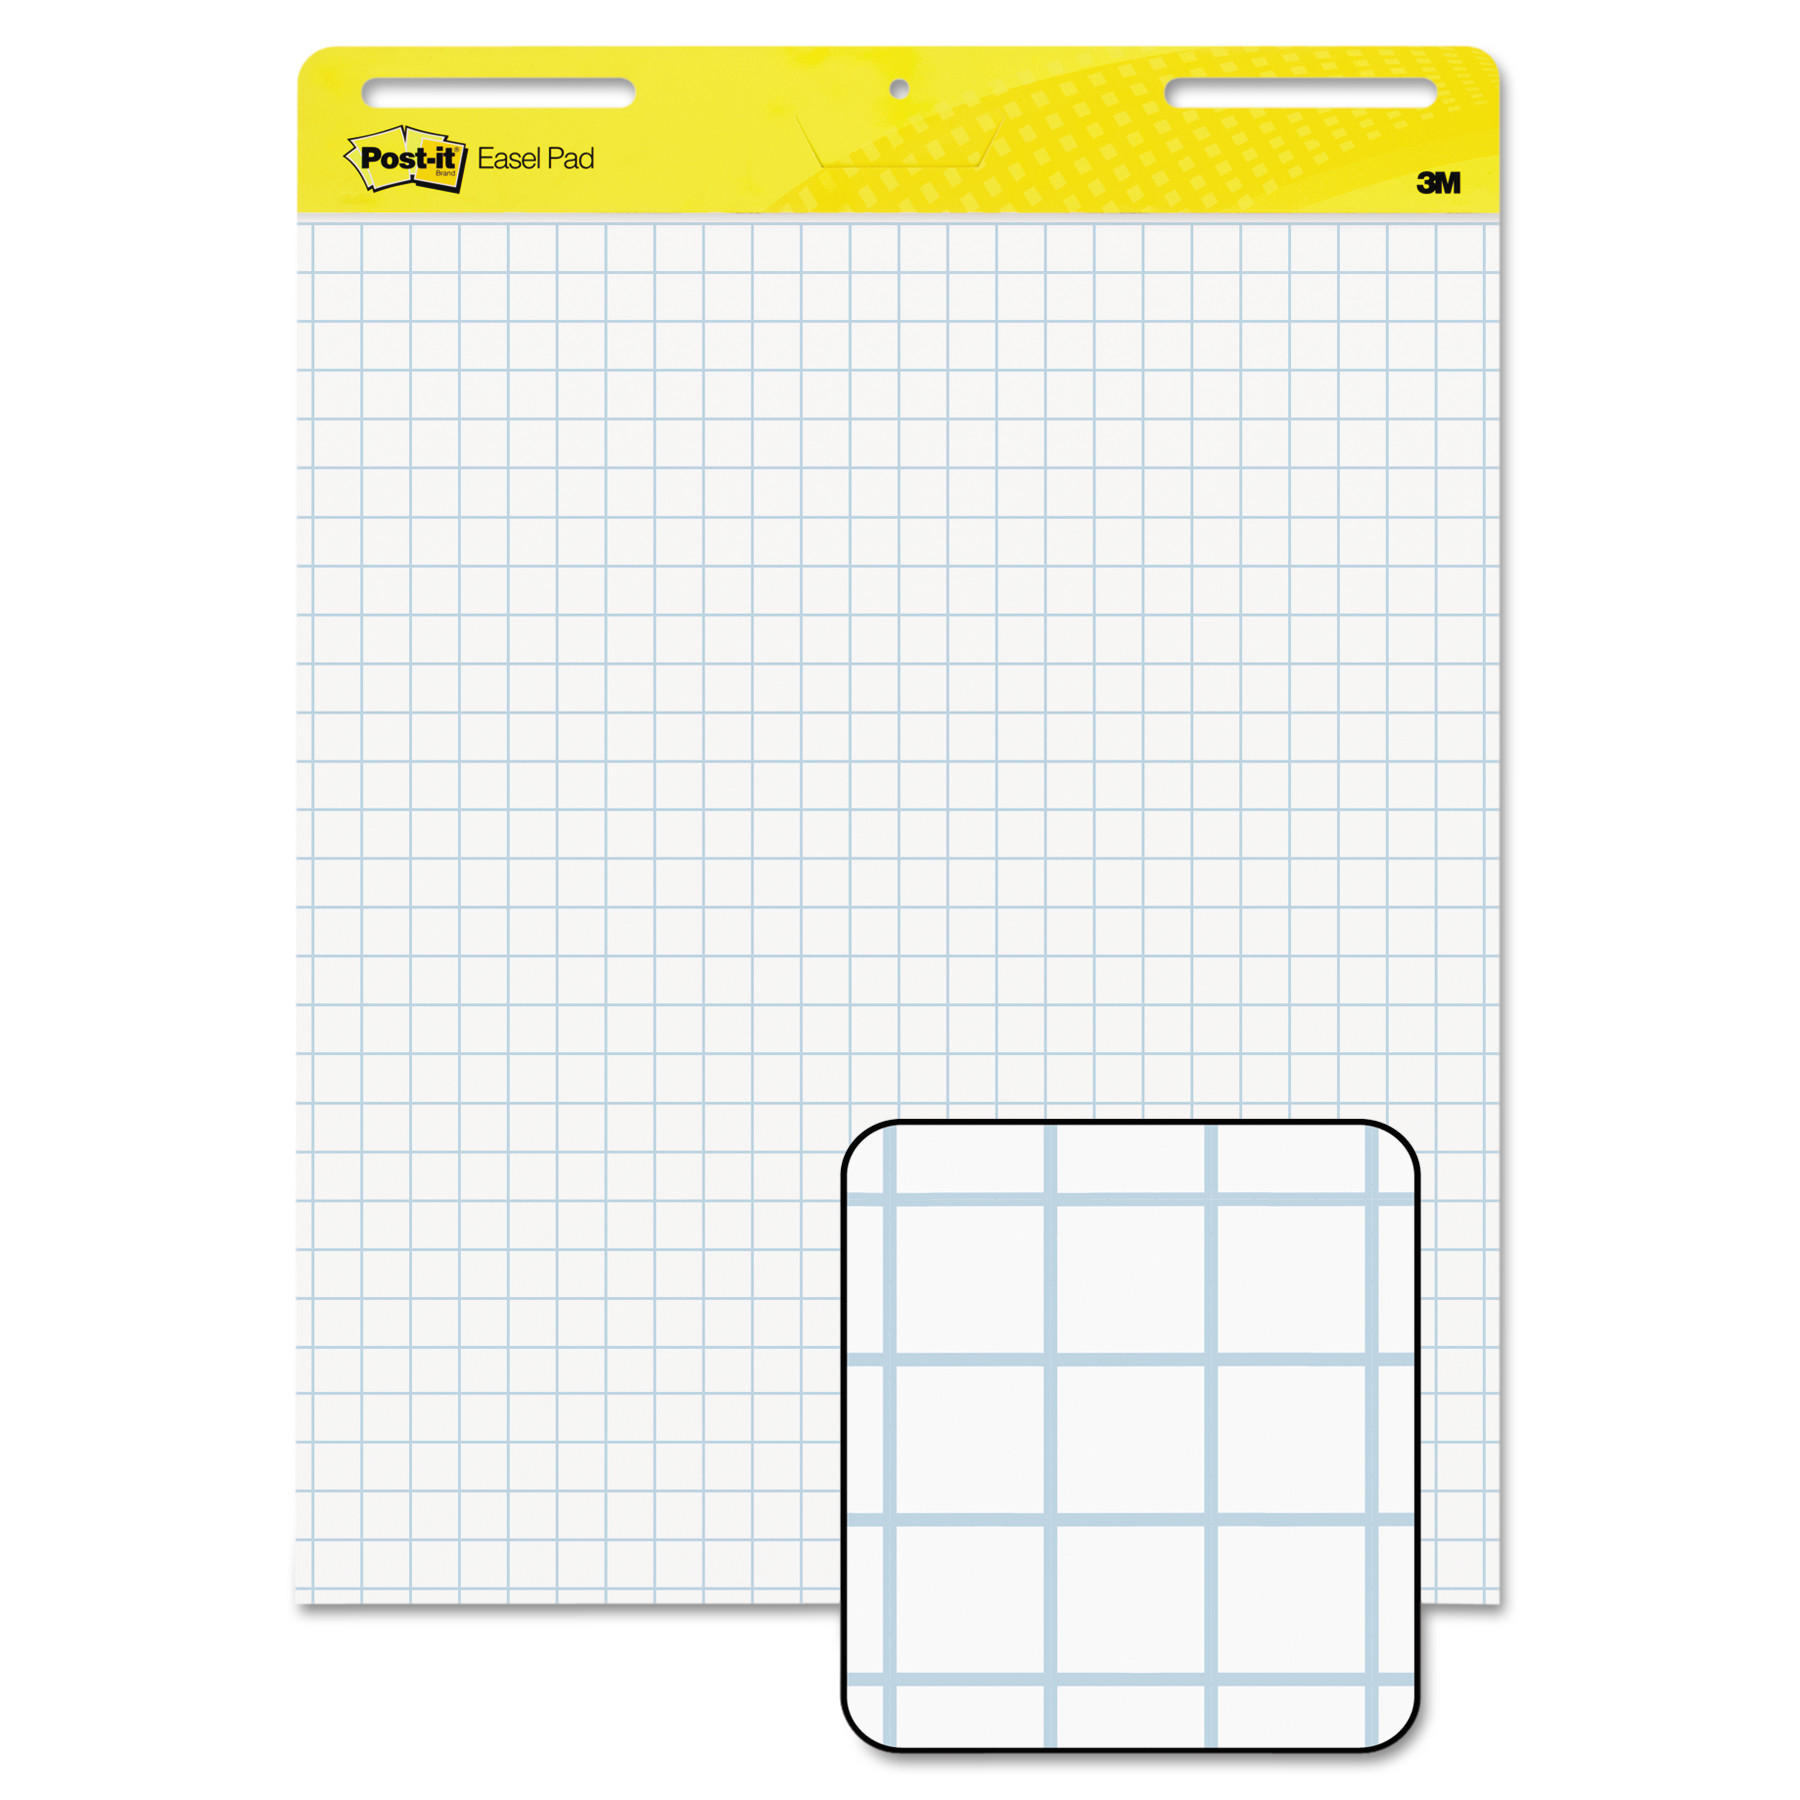 Post-it Self-Stick Easel Pads, White with Grid, 25 x 30-Inches, 30-Sheets/Pad, 2-Pads/Pack